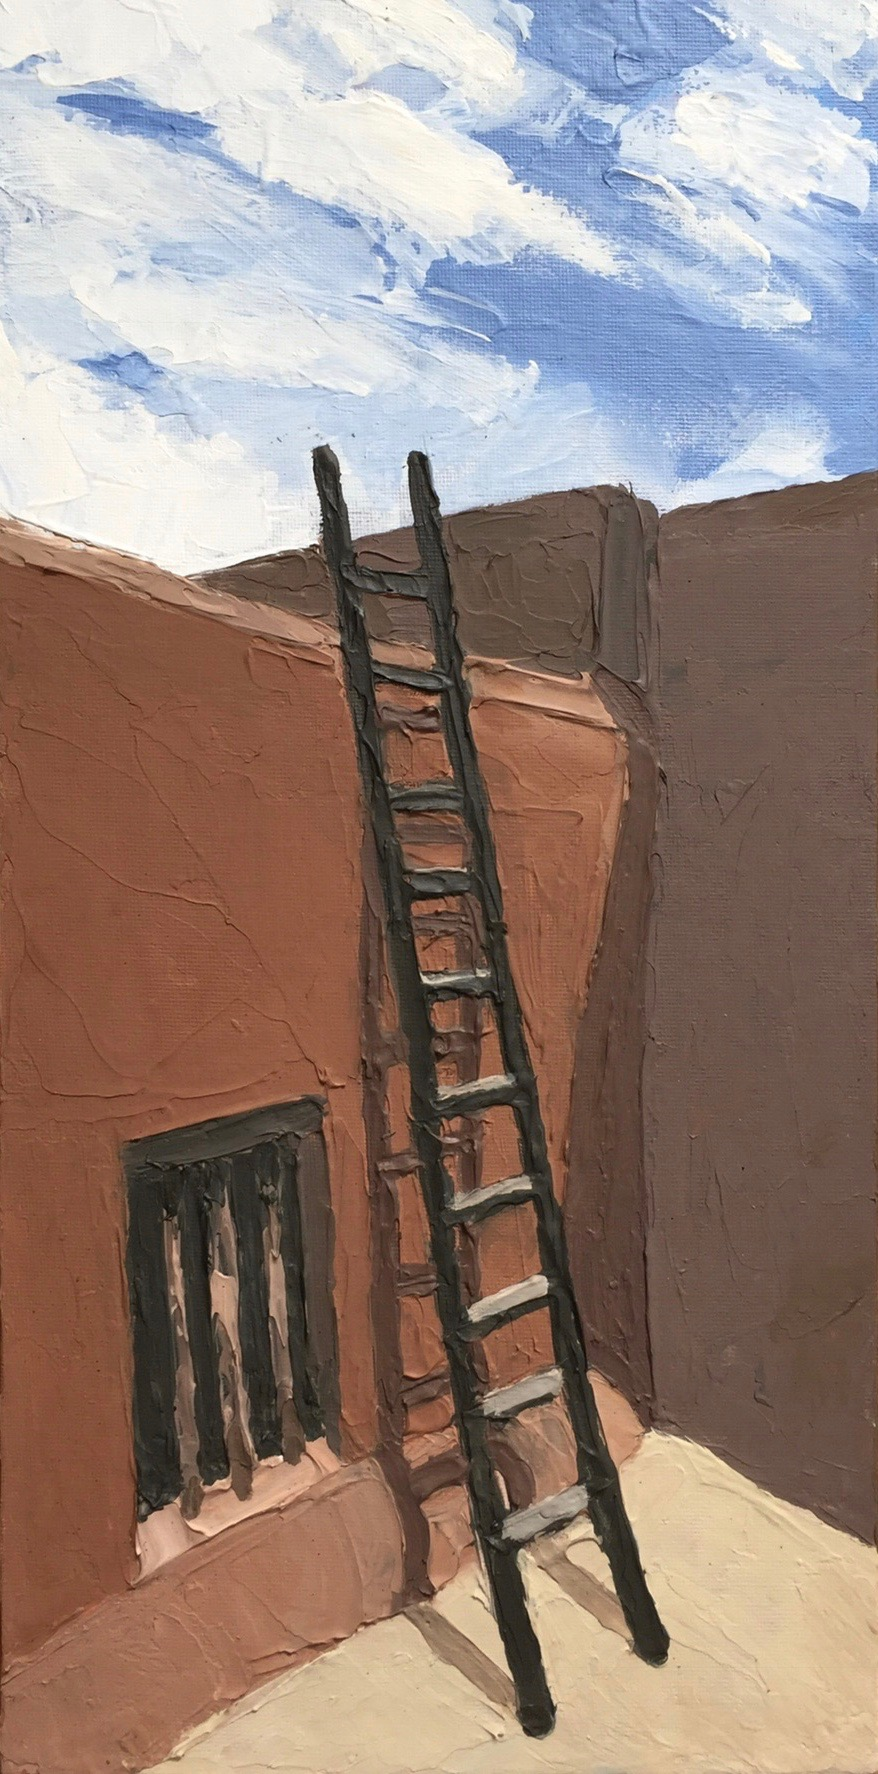 Abiquiu No. 1 (Georgia's Ladder)